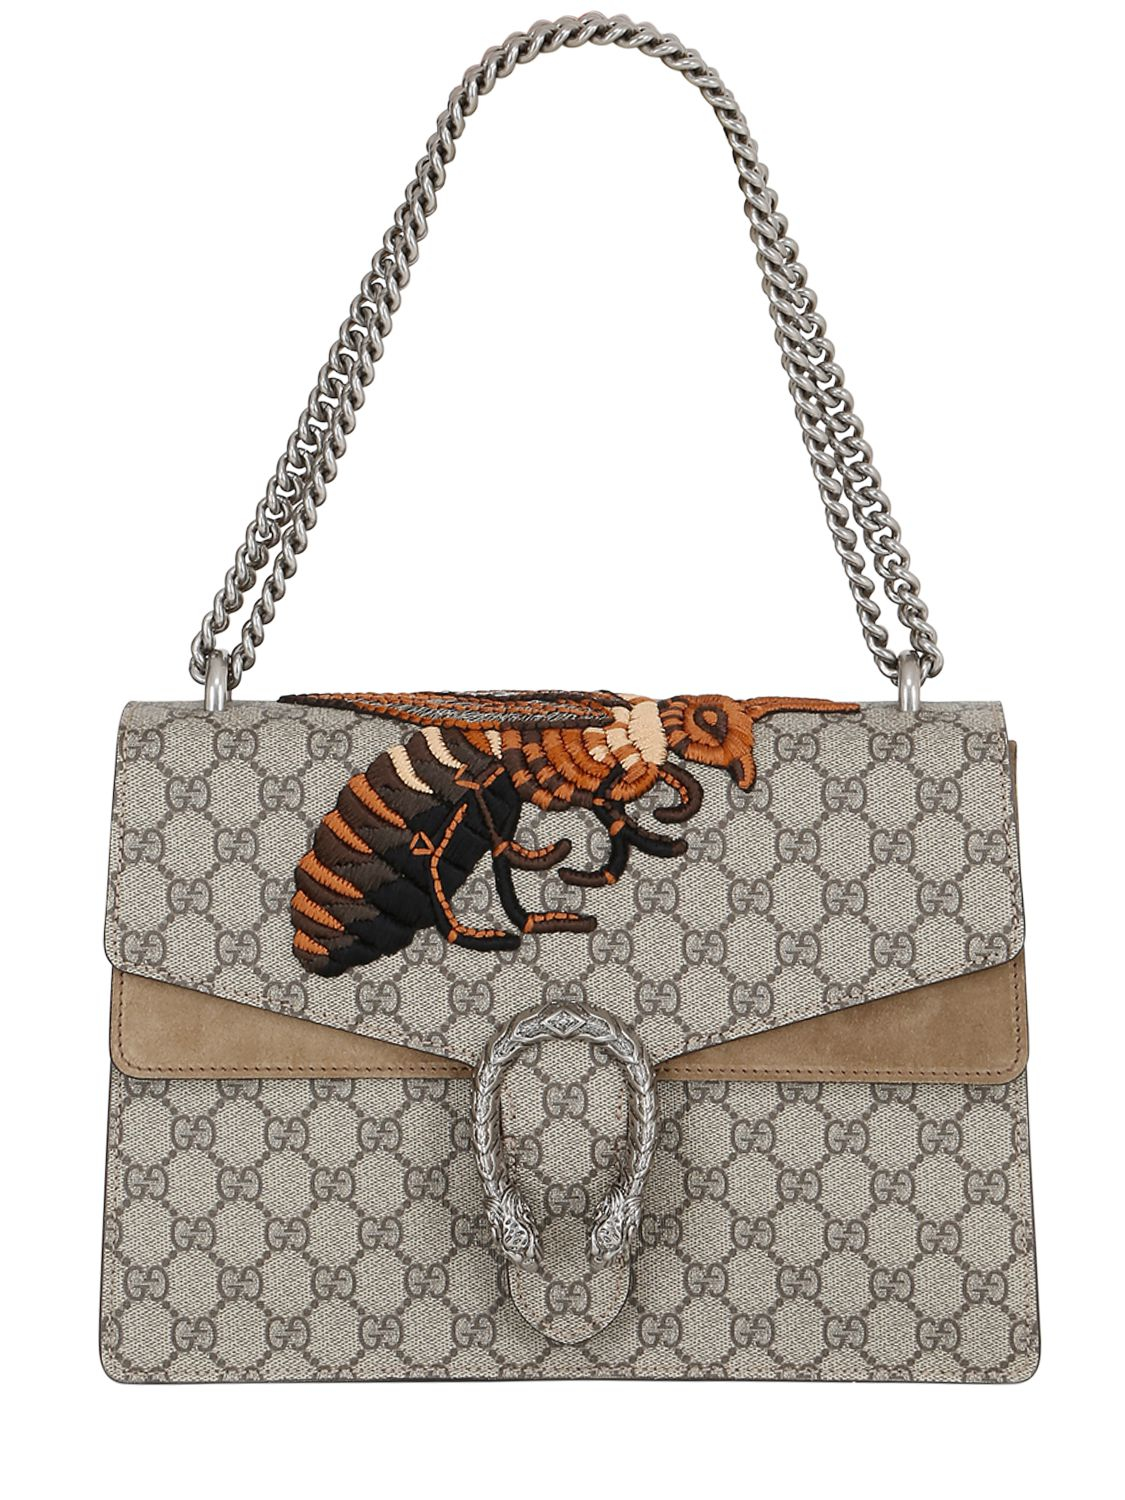 cdce8c9b2ae8 Gucci Supreme Bee Bag | Stanford Center for Opportunity Policy in ...